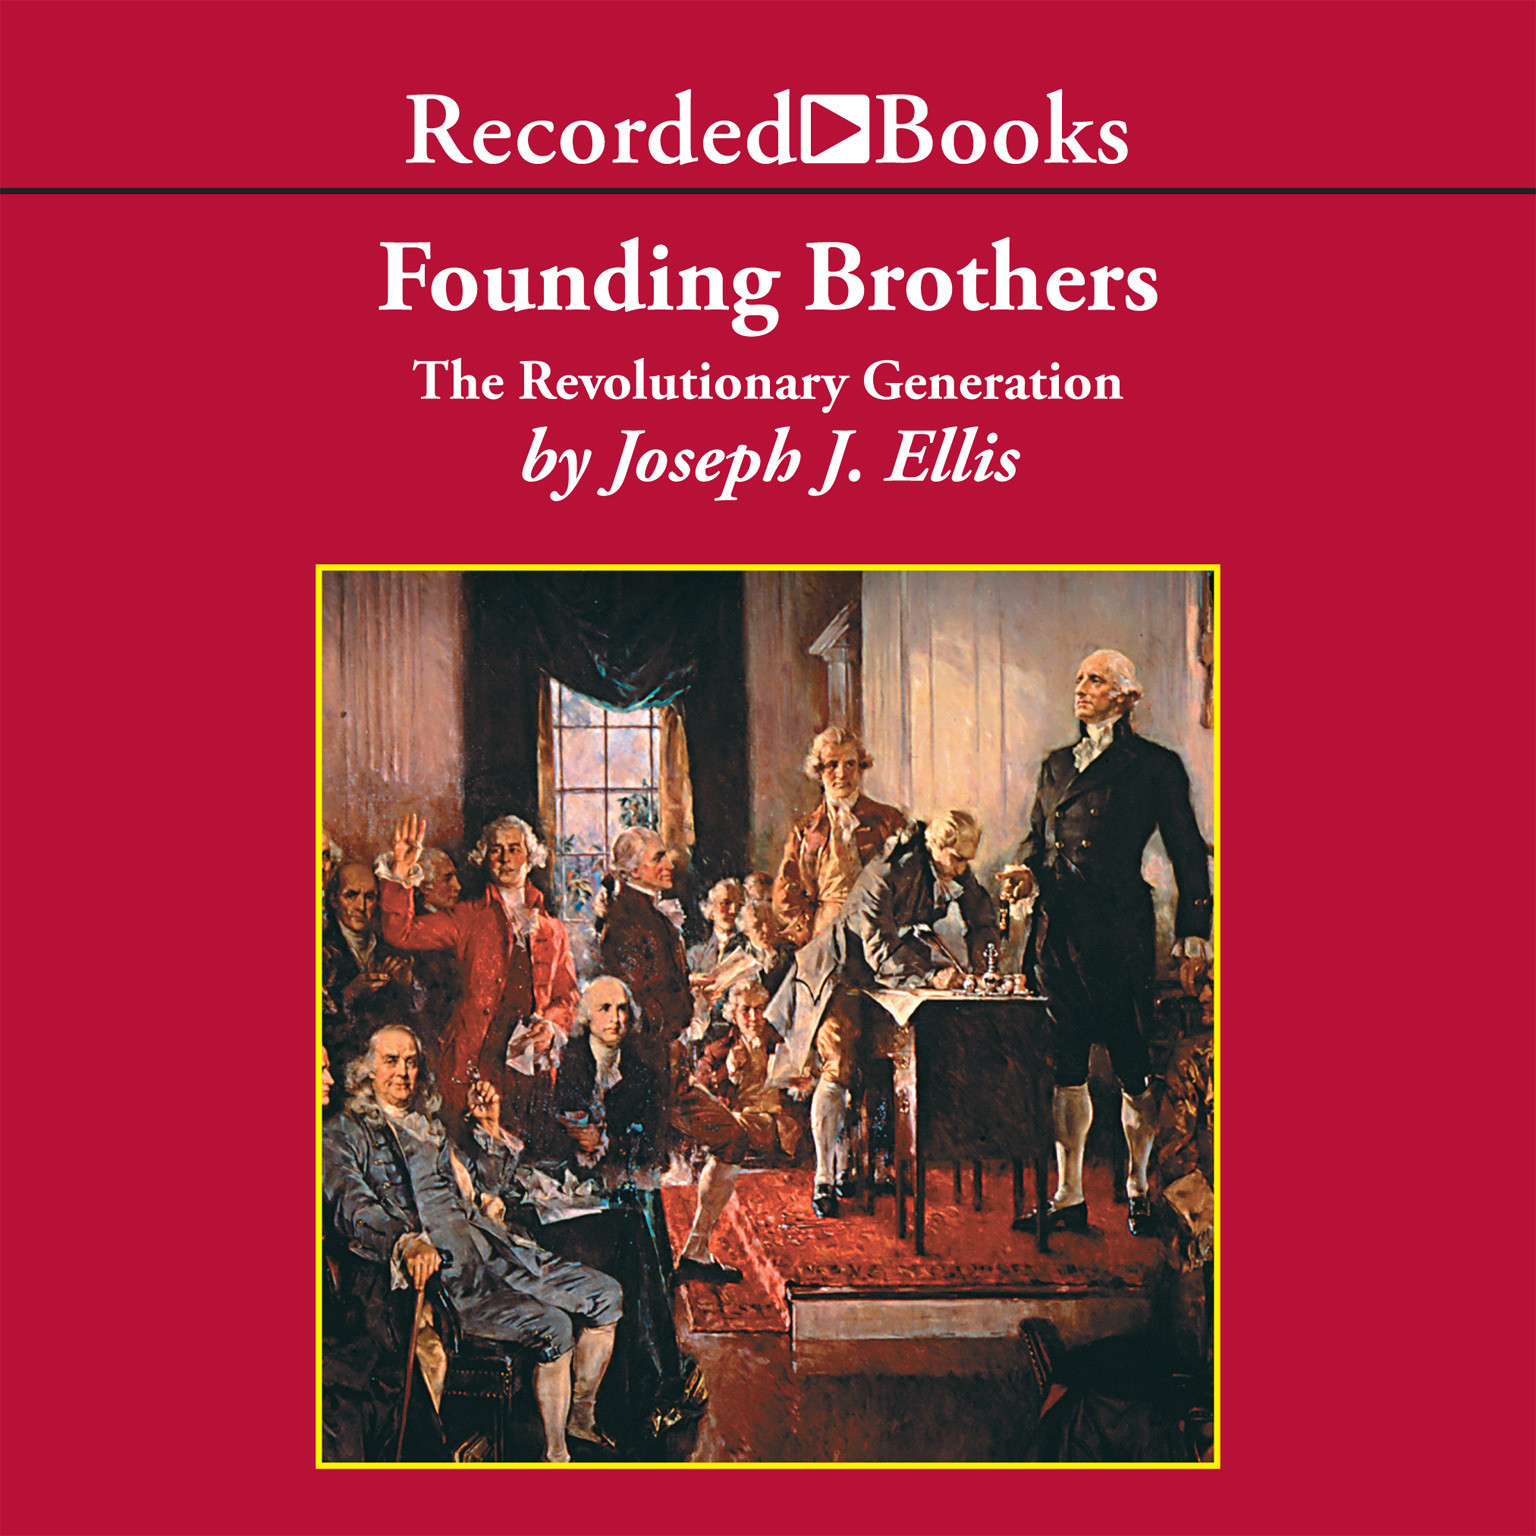 Healthy Food Essay Founding Brothers The Revolutionary Generation Audiobook By Joseph J  Ellis English Essay Questions also How To Write An Essay For High School Students Founding Brothers  Audiobook By Joseph J Ellis Example Of An Essay With A Thesis Statement